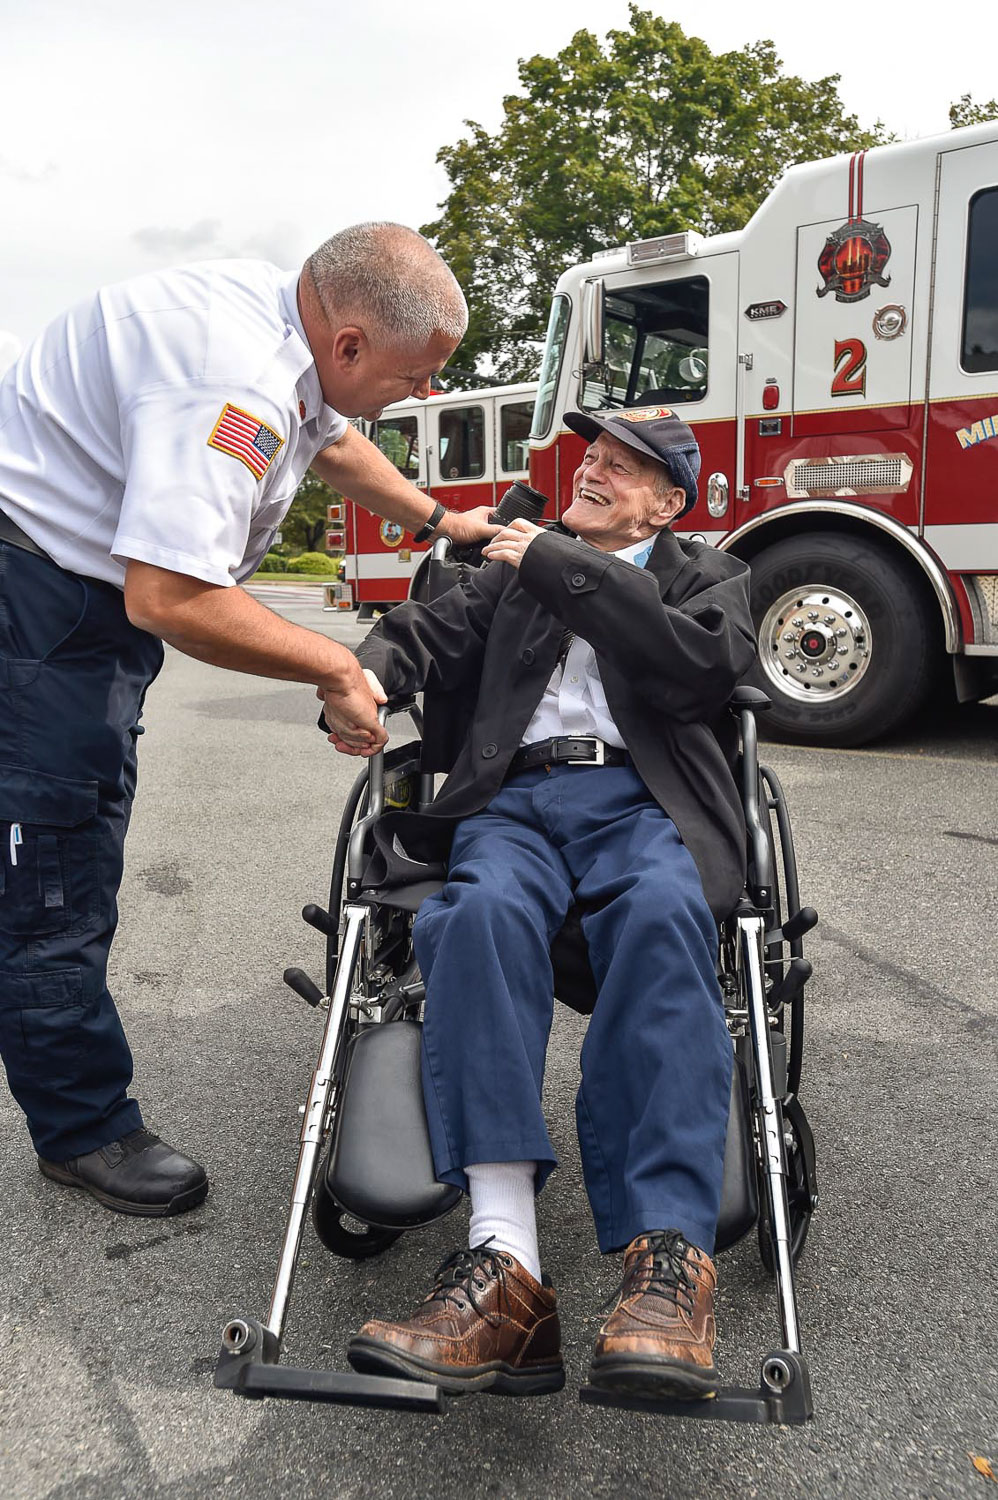 Second Place Photo Series:  1 of 9 Middleton Fire Chief Thomas Martinuk greets Bobby Jensen, who was named a honorary Middleton firefighter, during his visit at the Middleton Fire Department, Thursday, Sept. 14, 2017. [Wicked Local Photo / David Sokol]